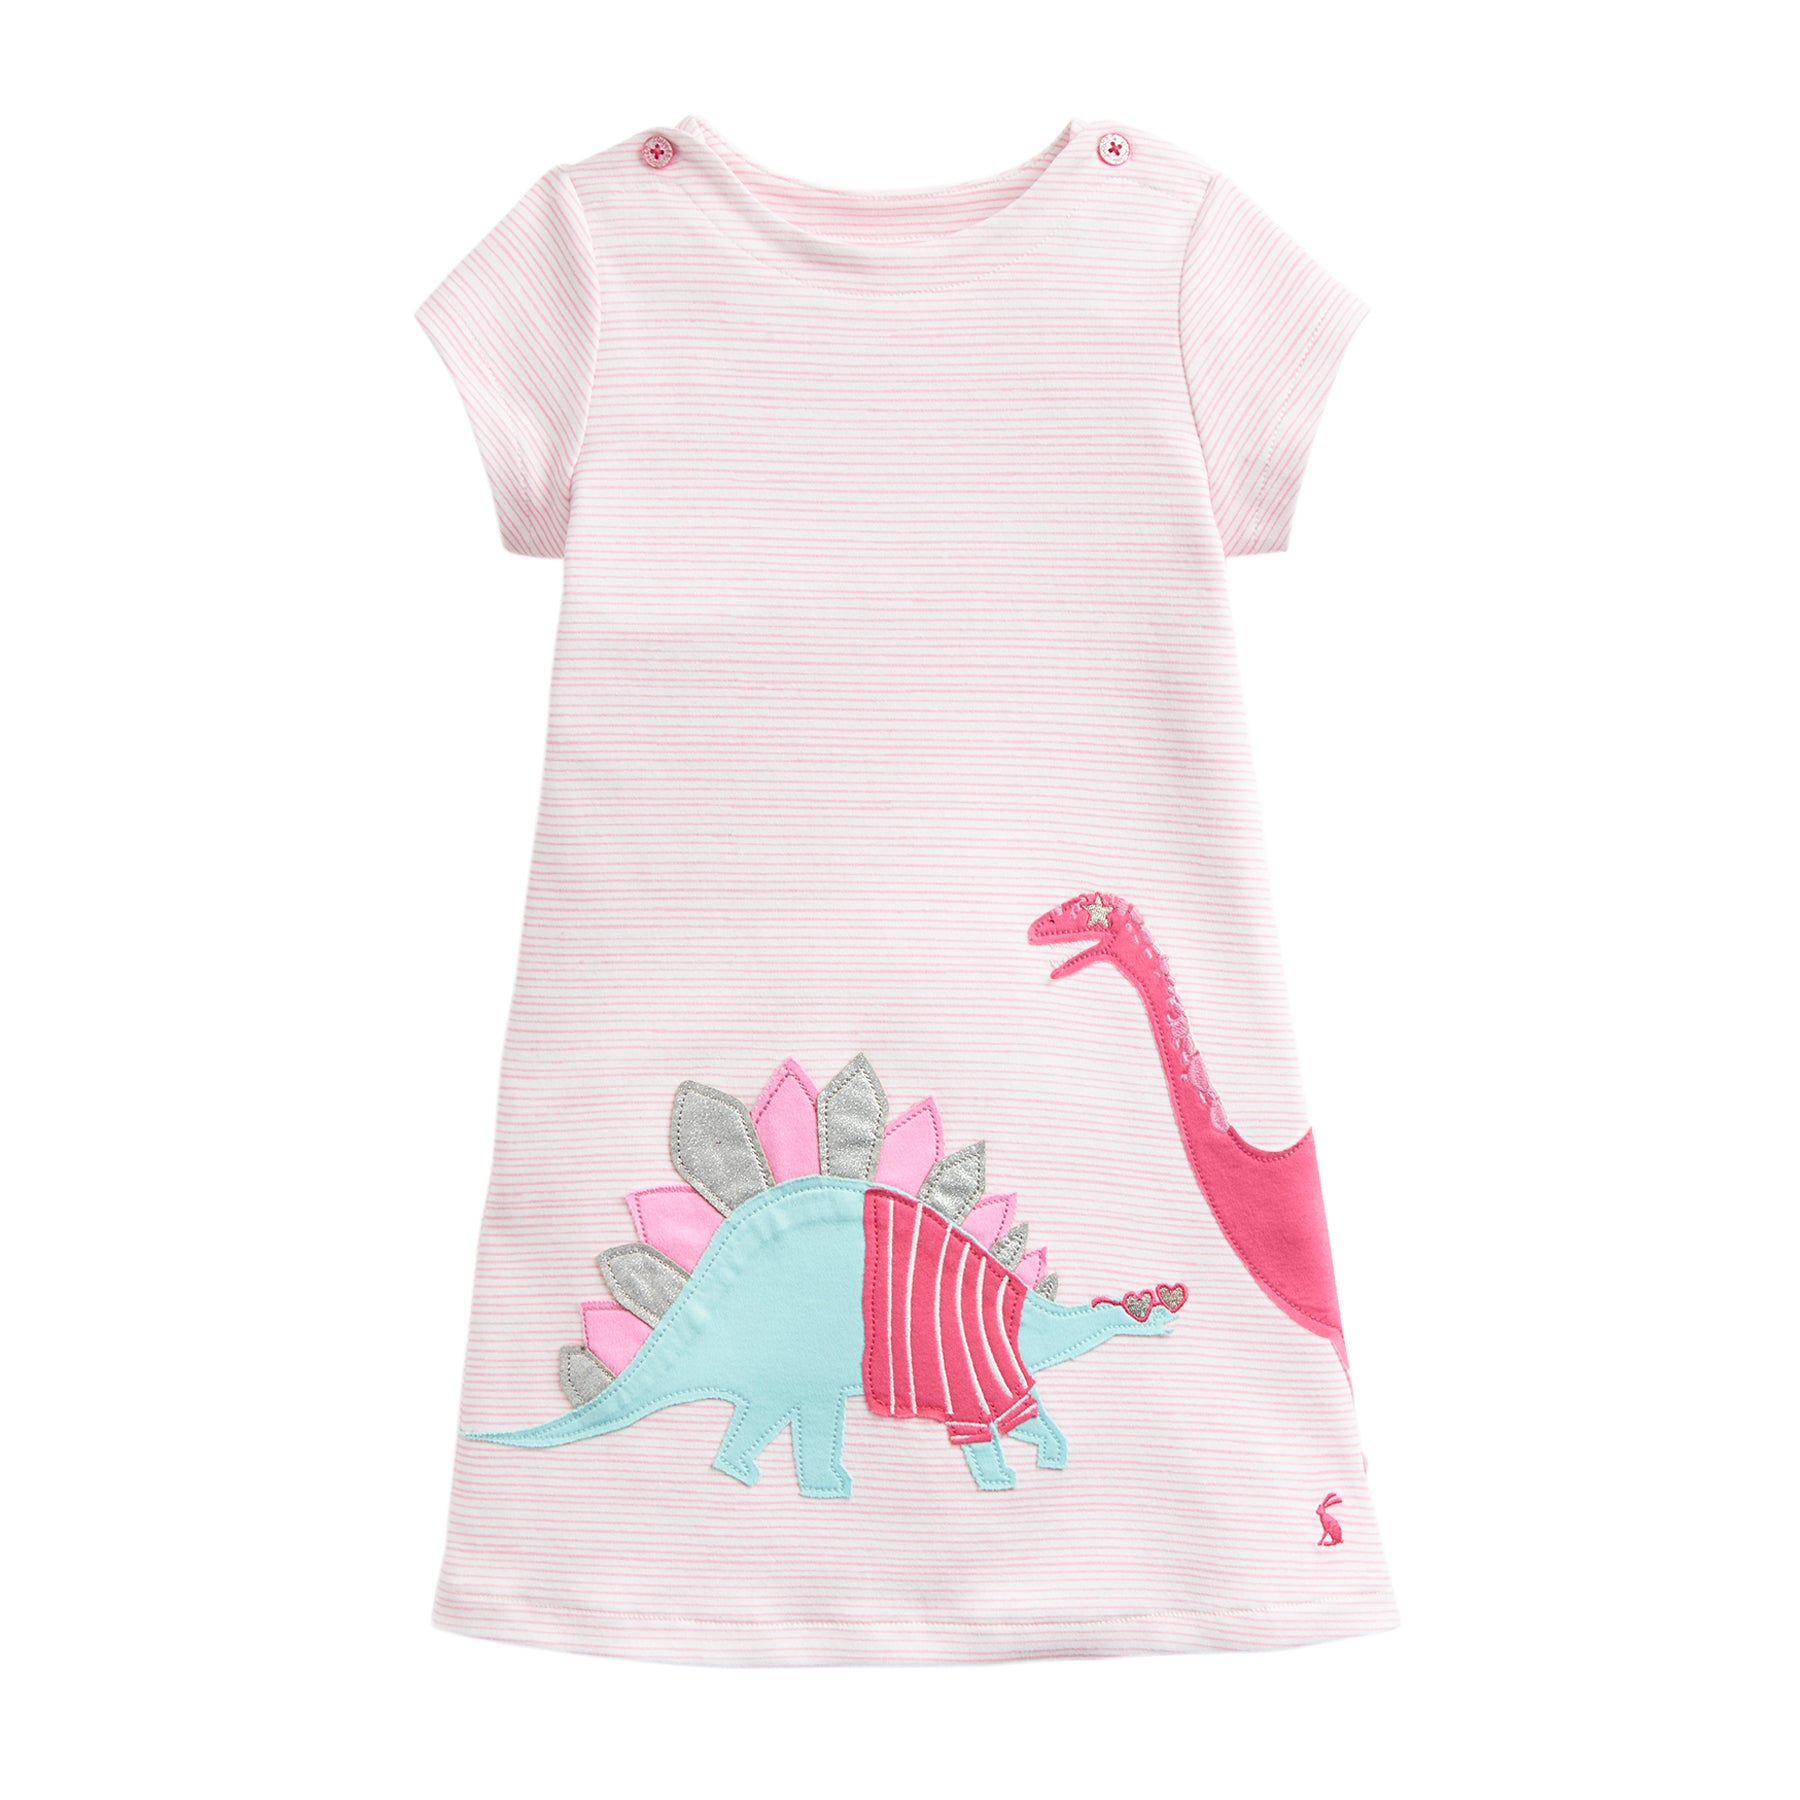 Joules Kaye Applique Girls Dress - Pink Stripe Dinos